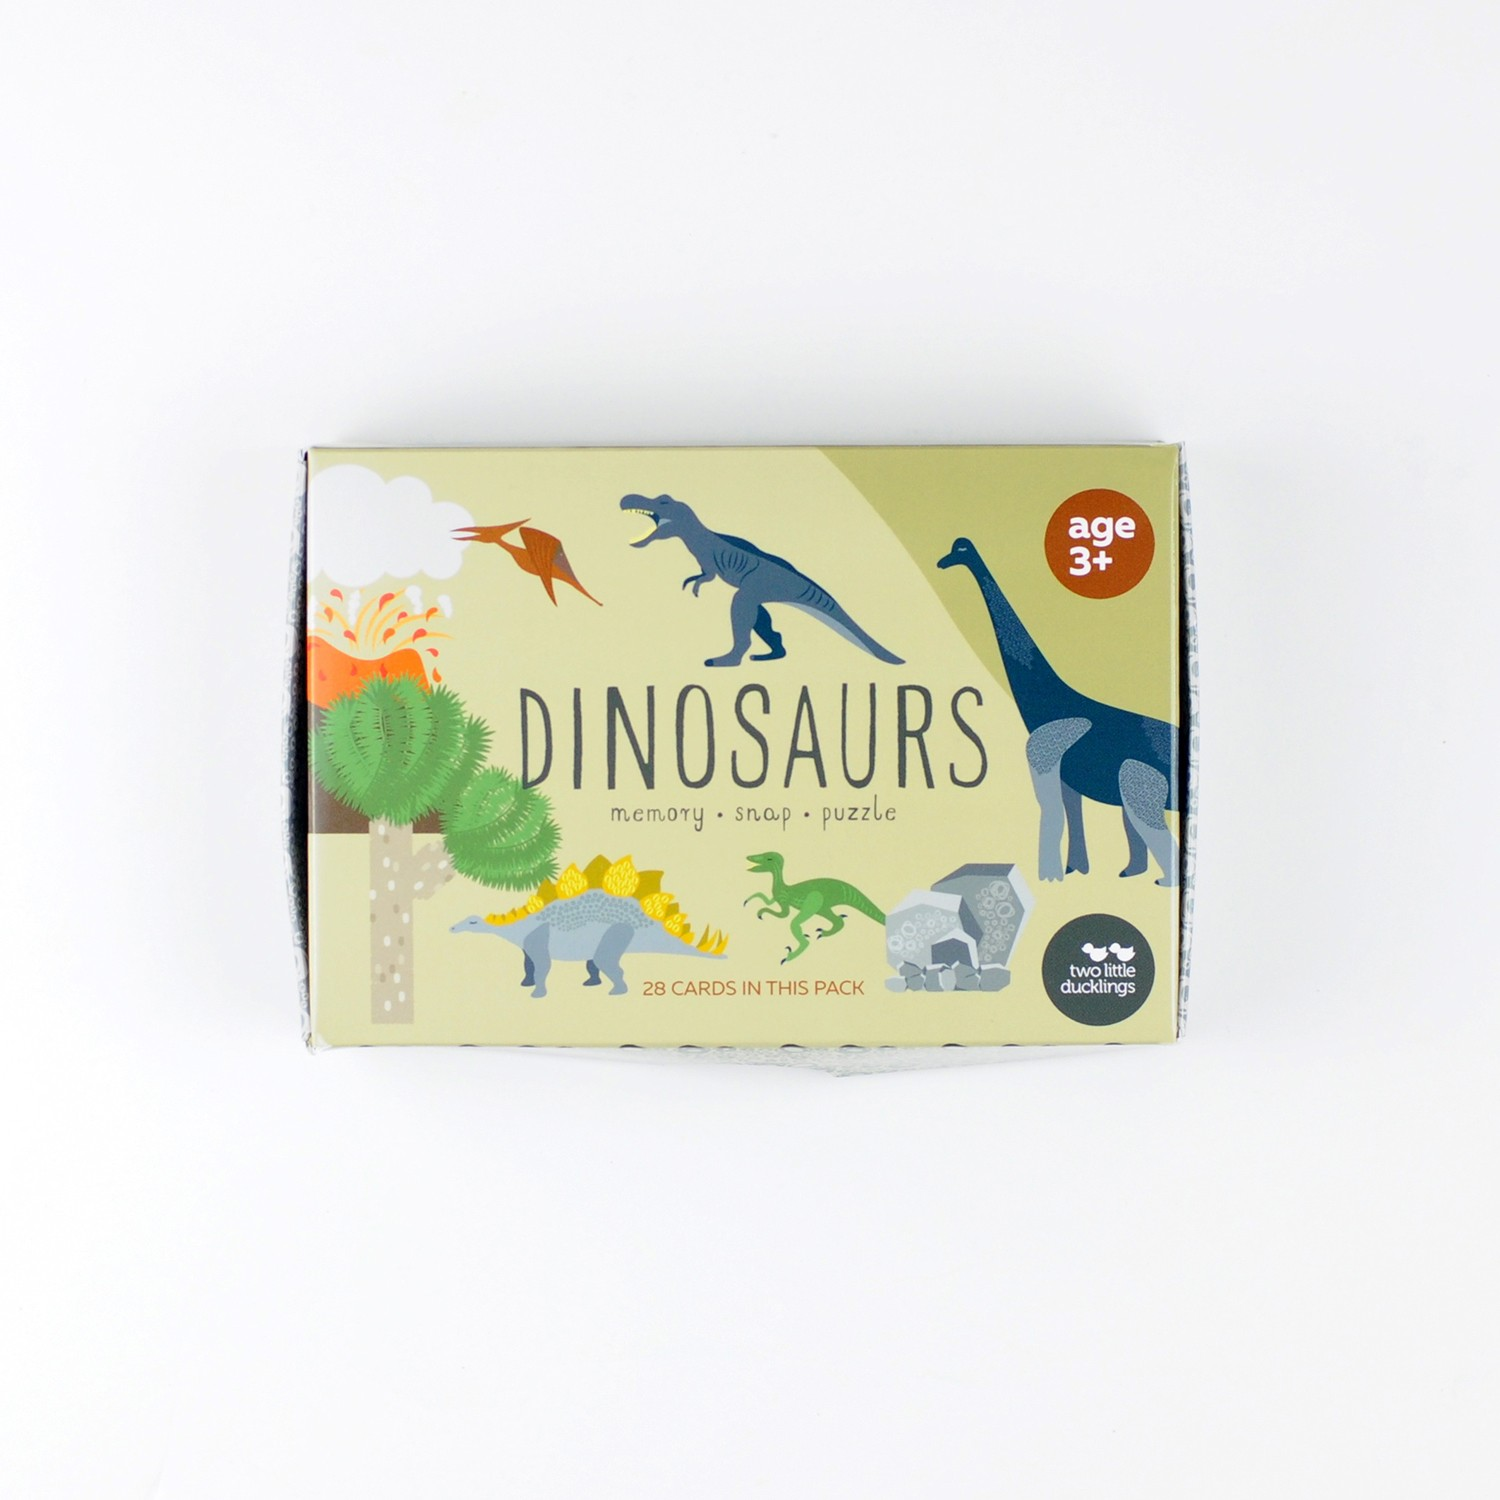 2LD Dinosaurs Snap, Memory and Puzzle Game